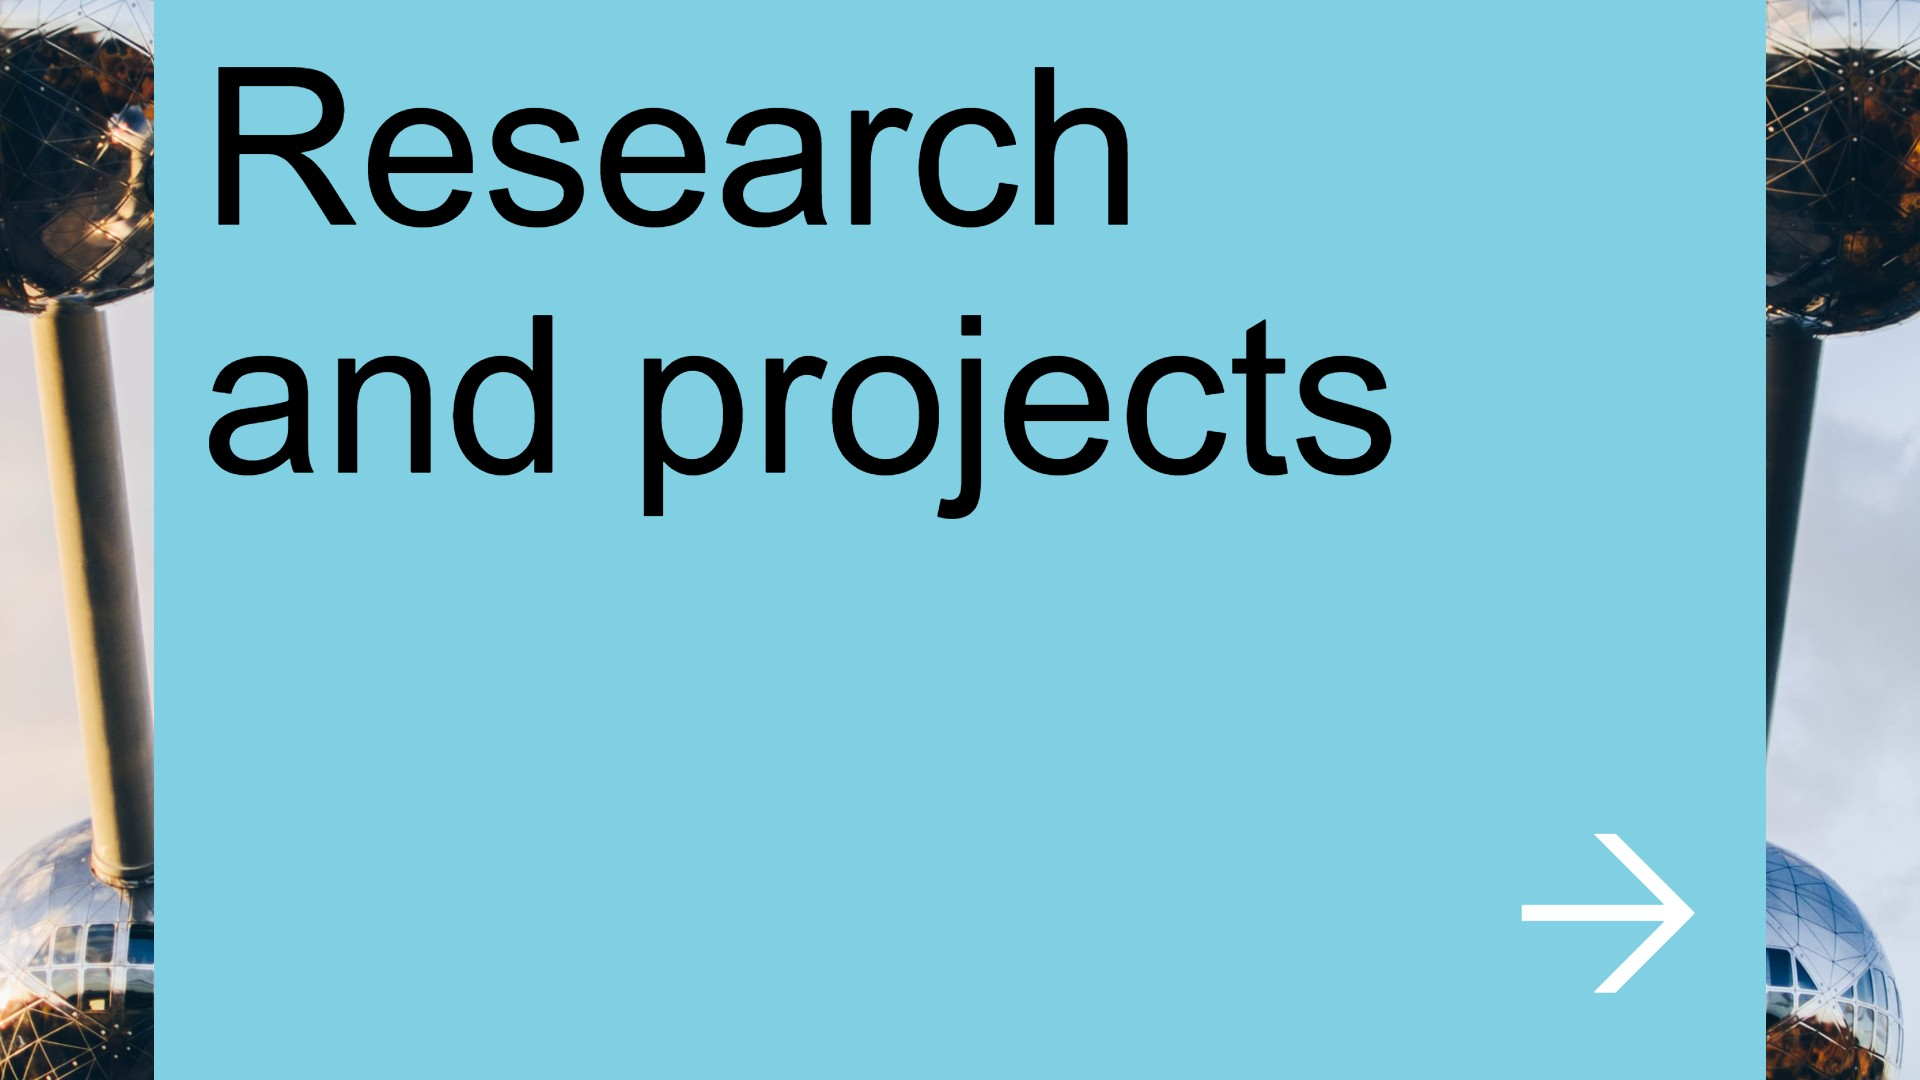 Current and past research and projects